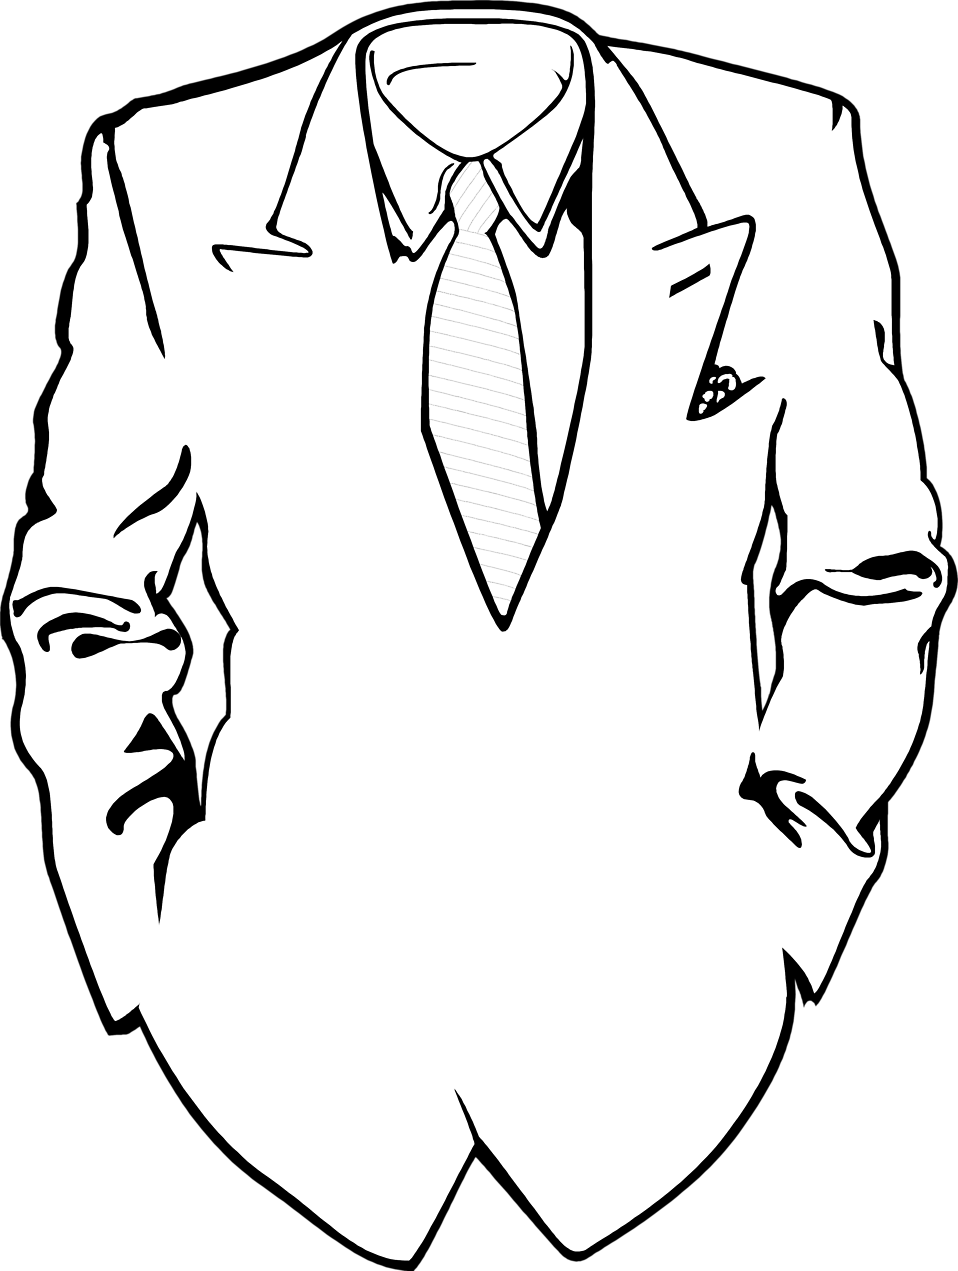 Suit And Bow Tie Drawing For Suit And Tie Drawing